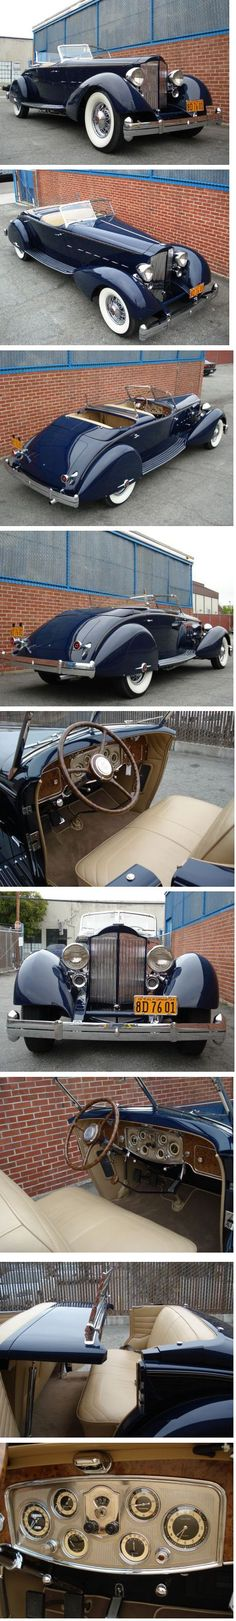 1934 Packard Twelve Sport Phaeton...Brought to you by #HouseofInsurance in #Eugene #Oregon